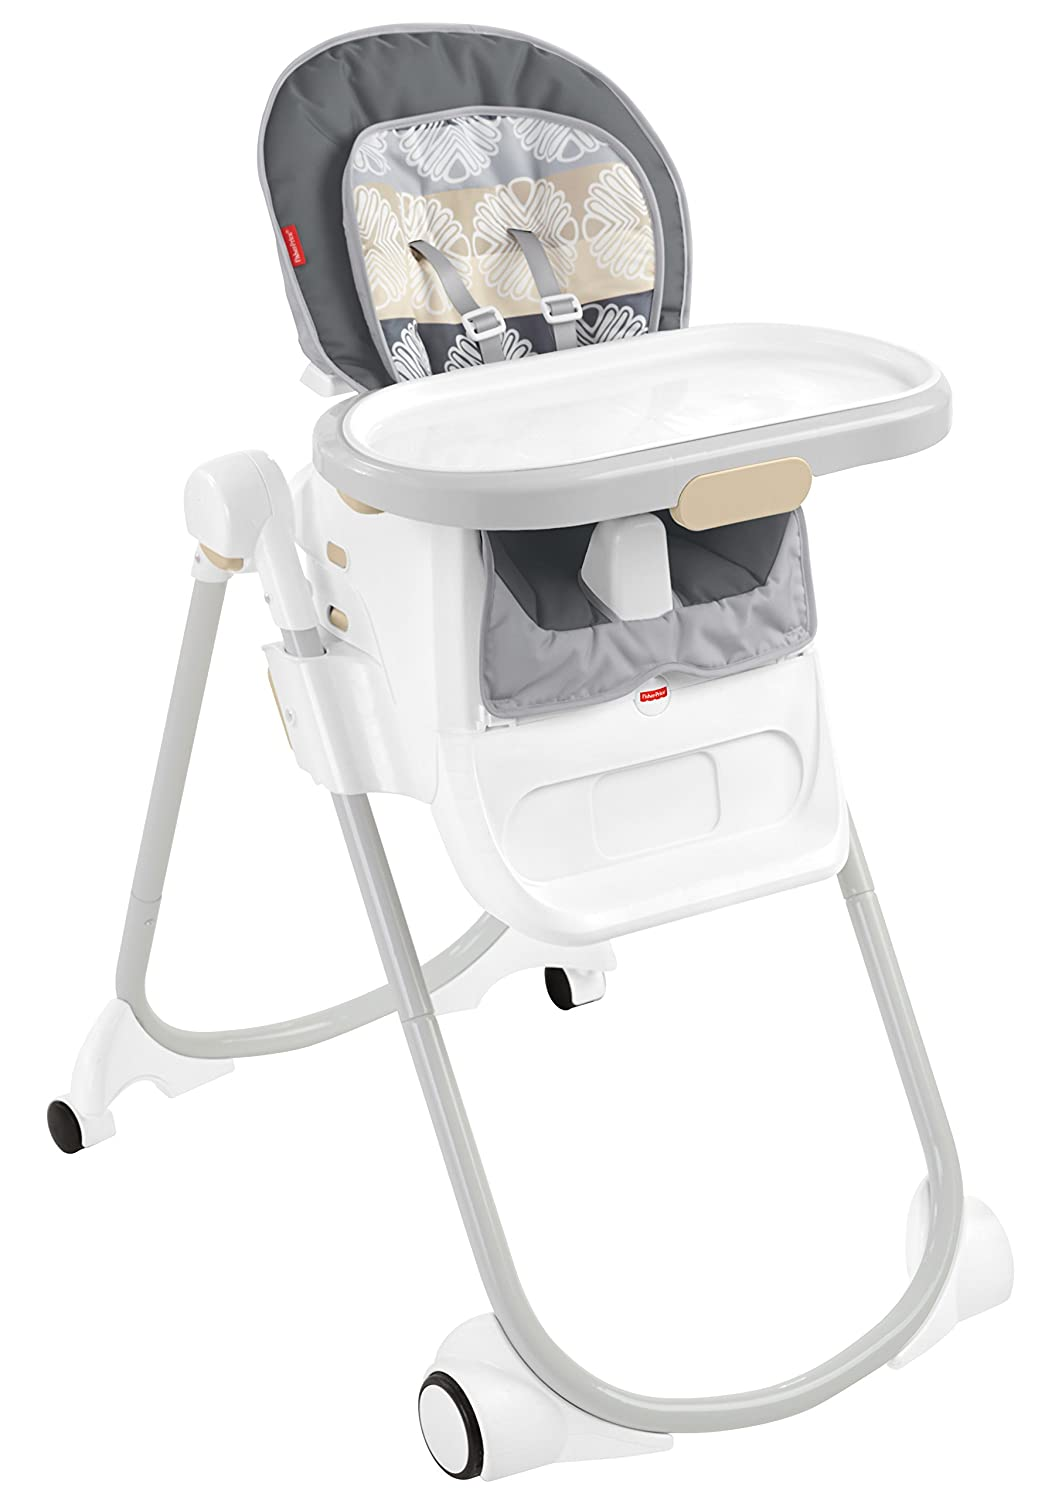 Fisher-Price 4-in-1 Total Clean High Chair DVM43